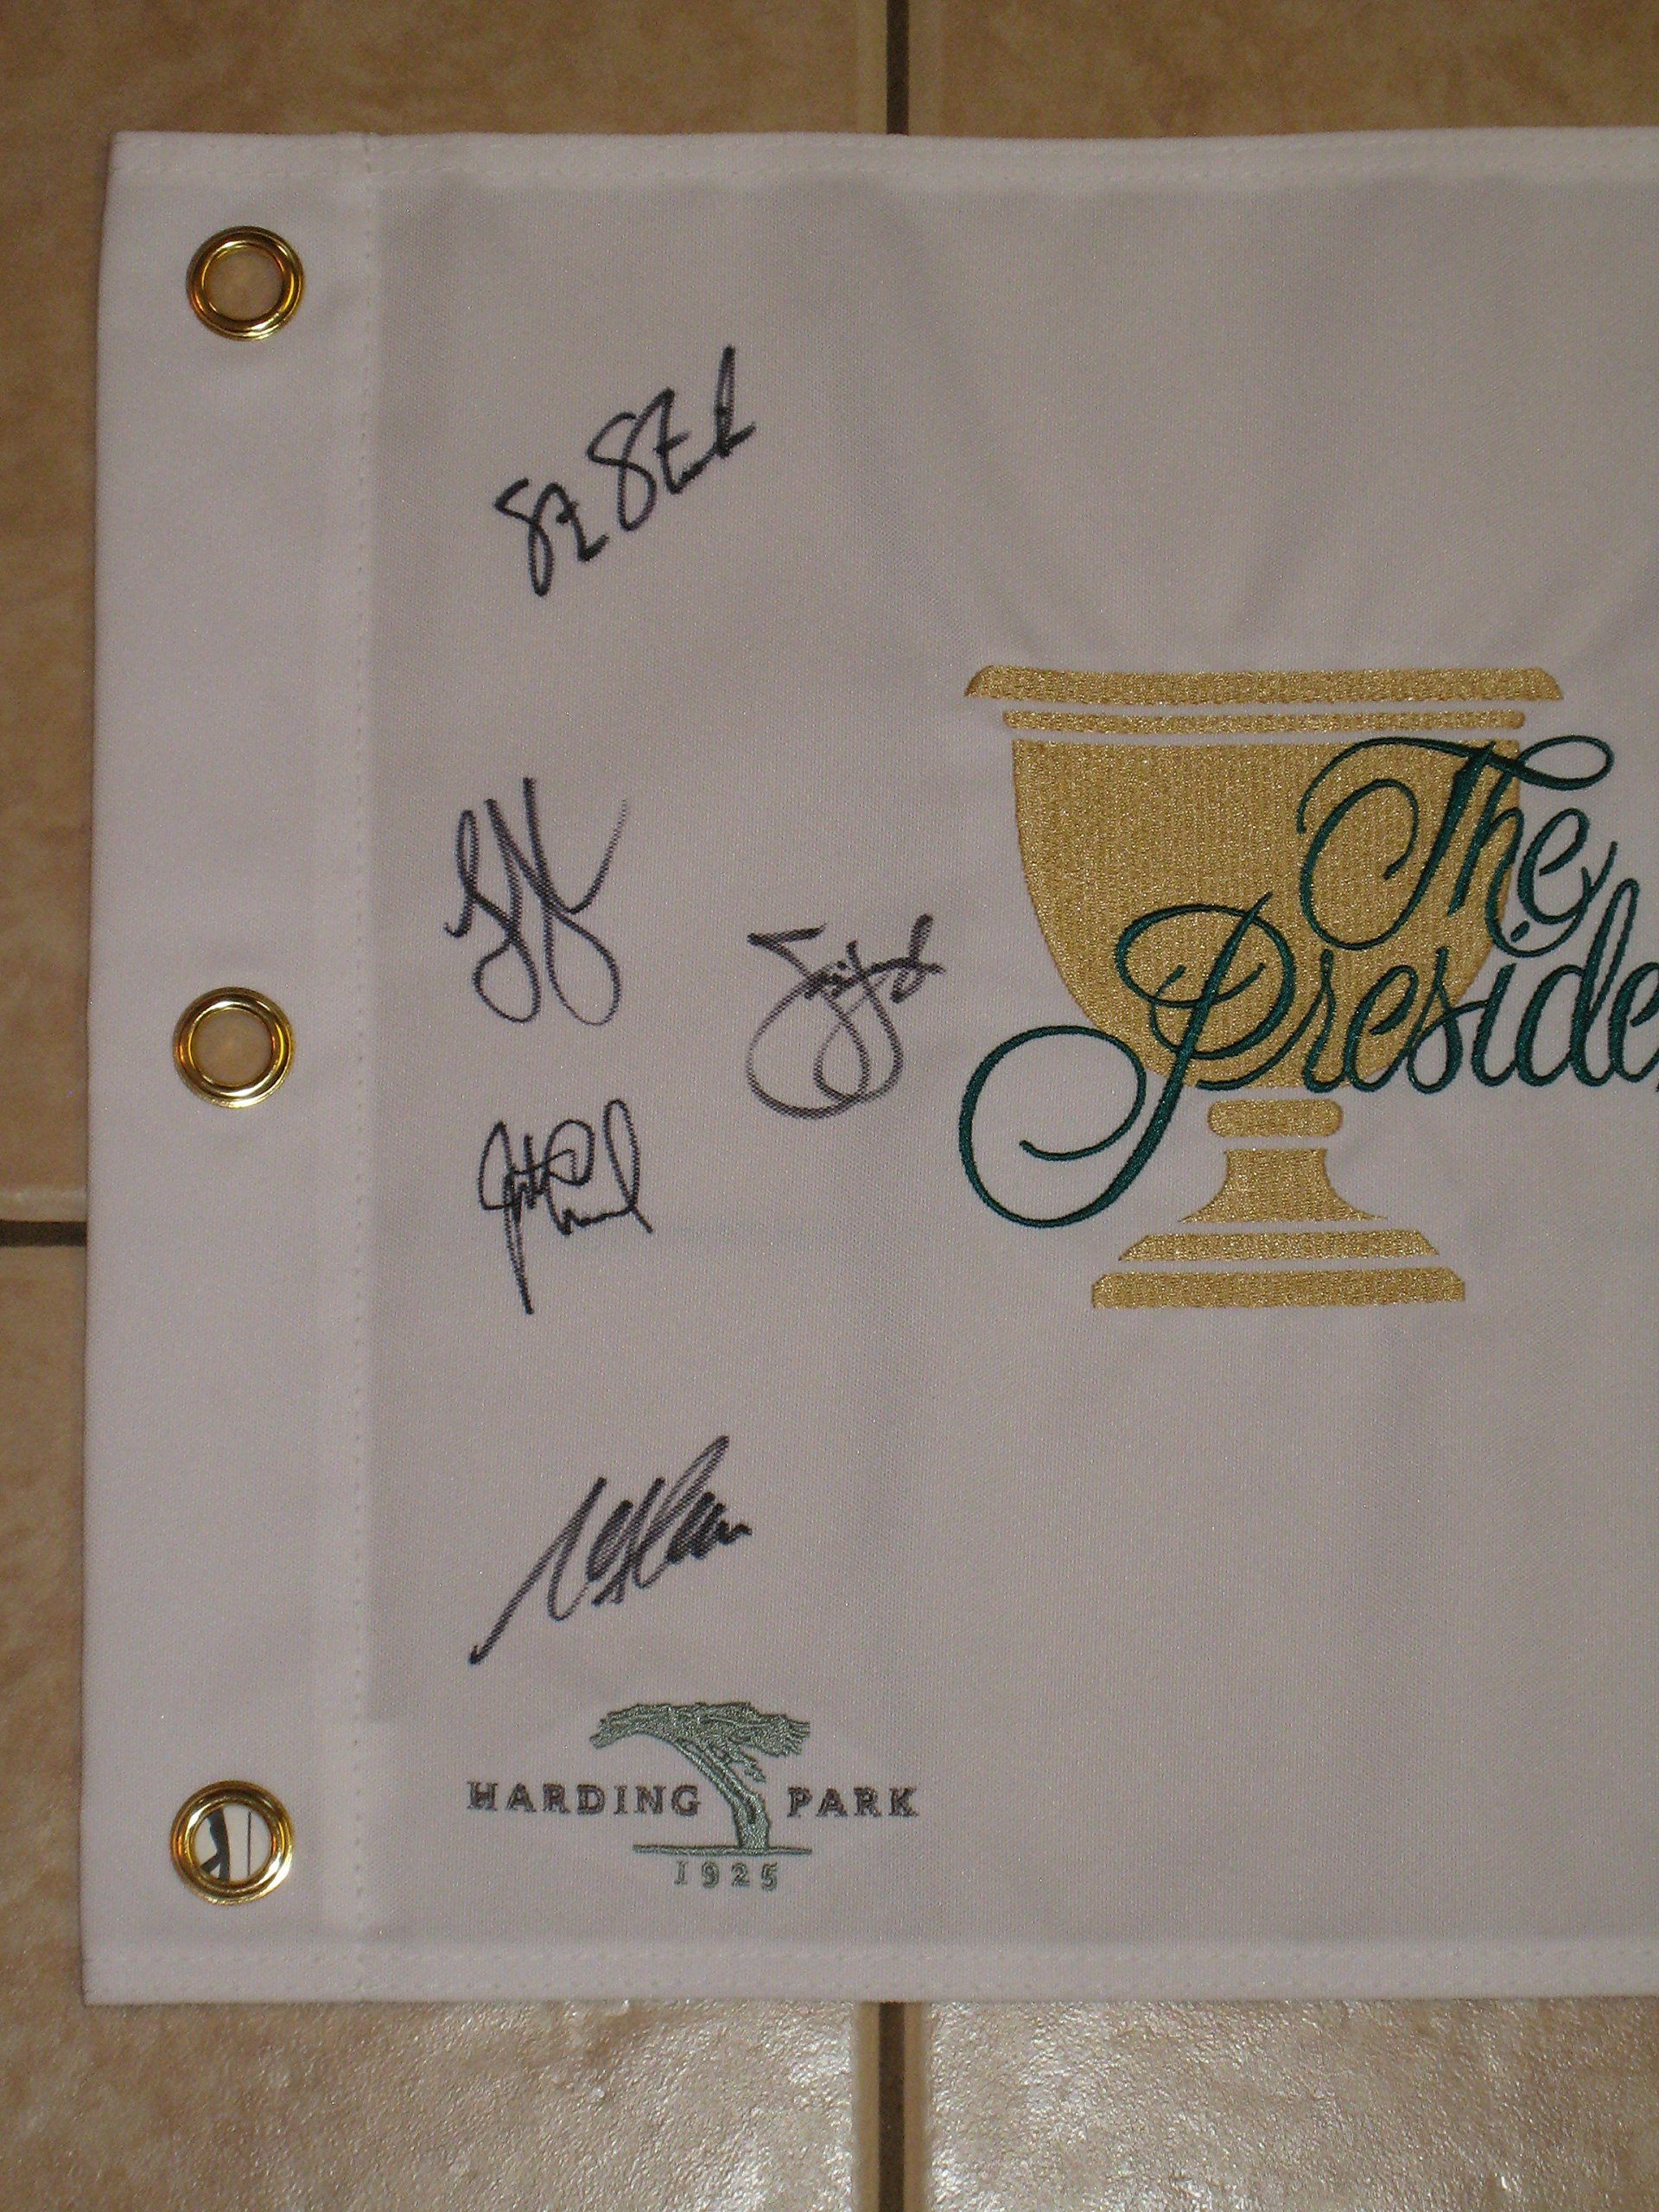 2009 Presidents Cup Harding Park Golf Flag signed by 7 Stricker, Furyk